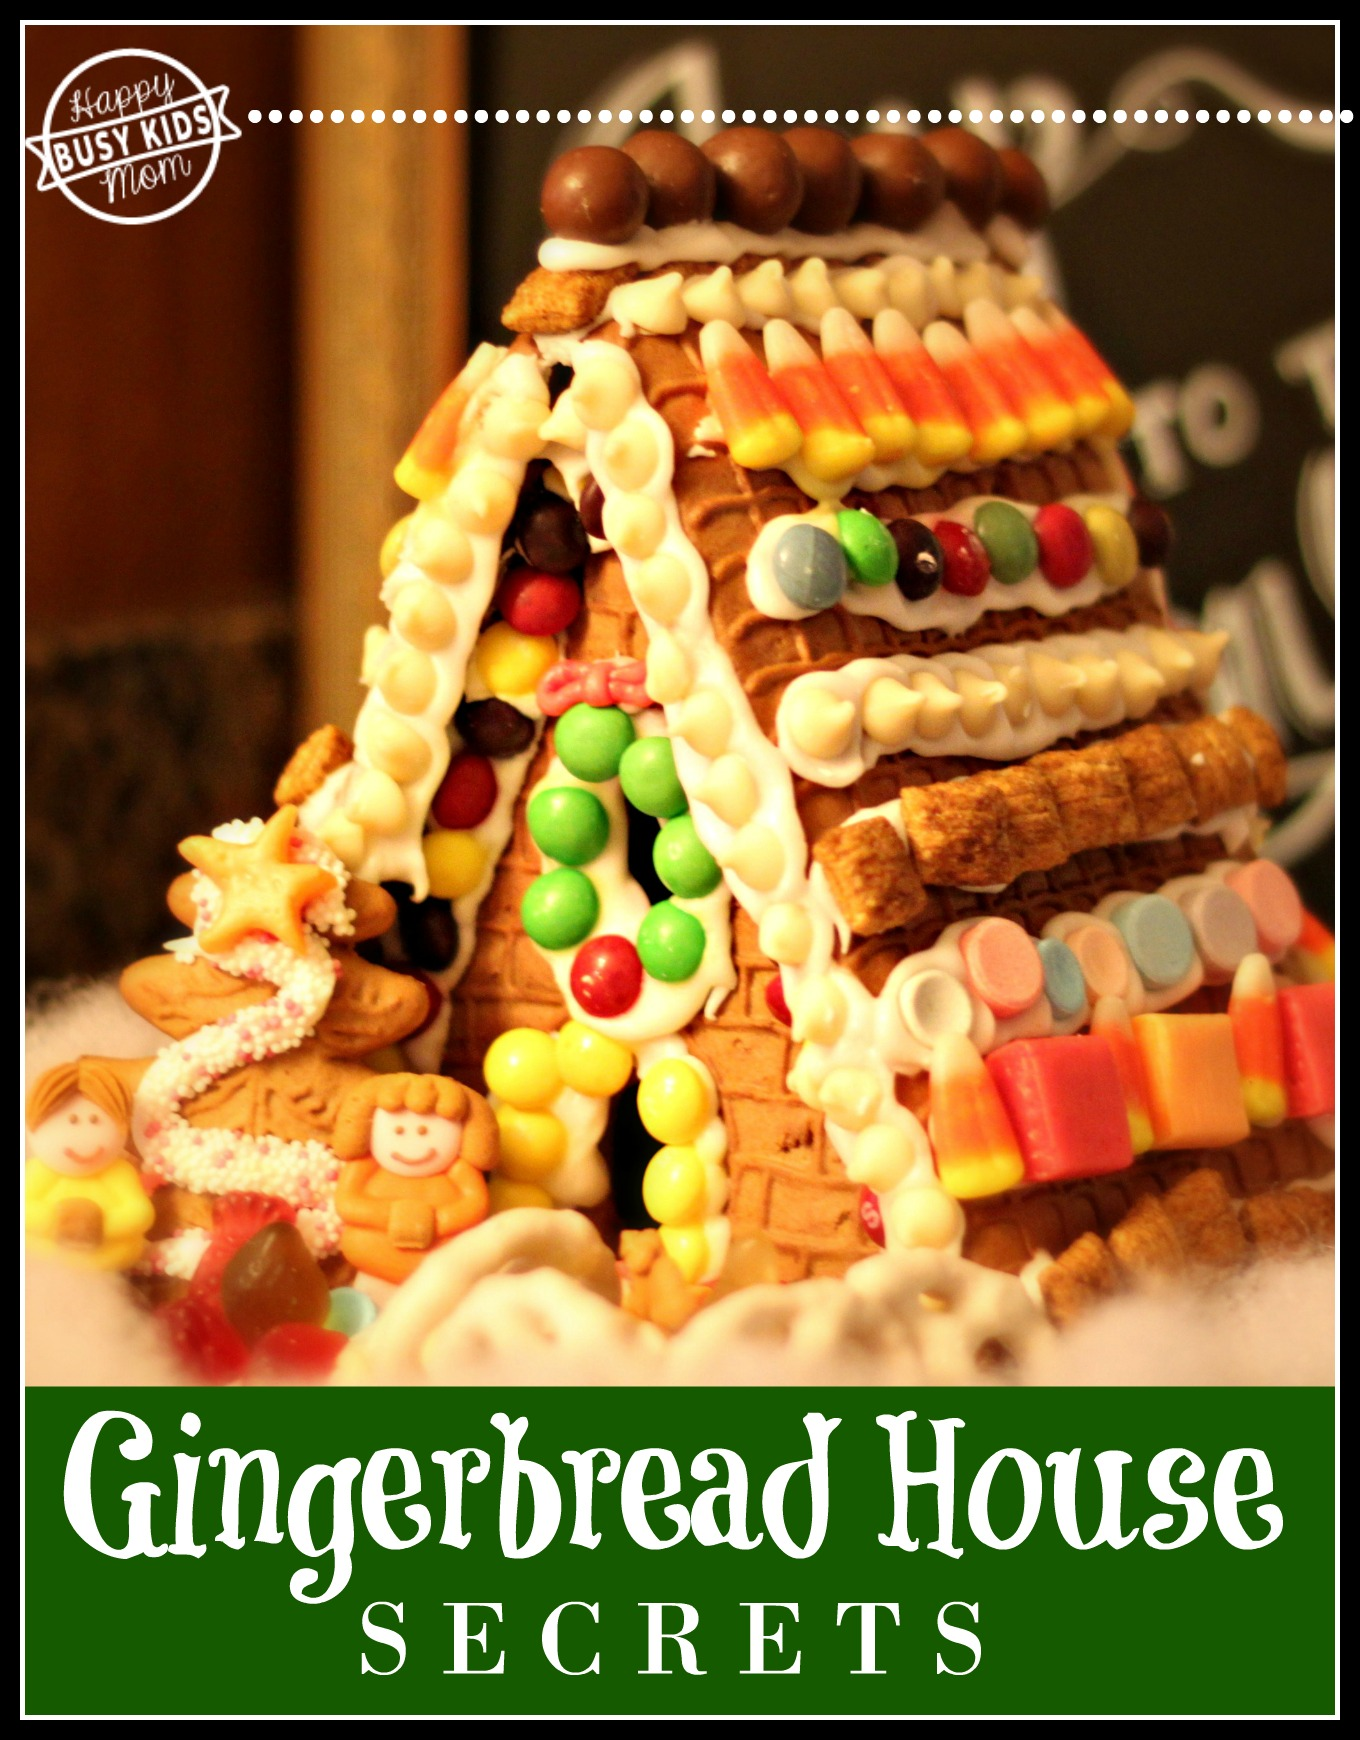 Looking for a secret trick to make a faster gingerbread house?